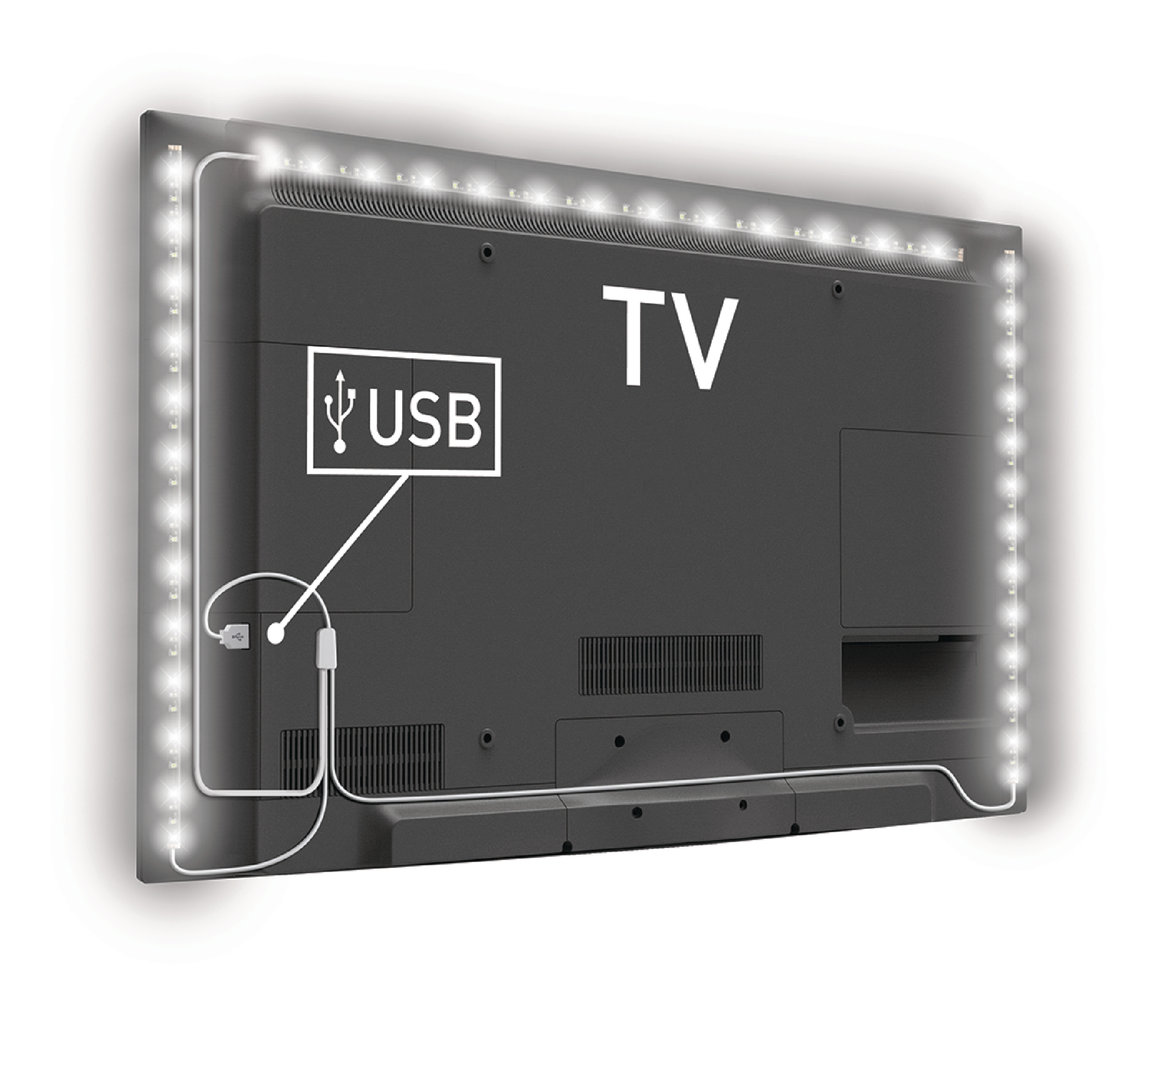 Eclairage Led Pour Tv Bande Led Lumineuse Pour Tv Led 192 Lm 1800 Mm Blanc Froid